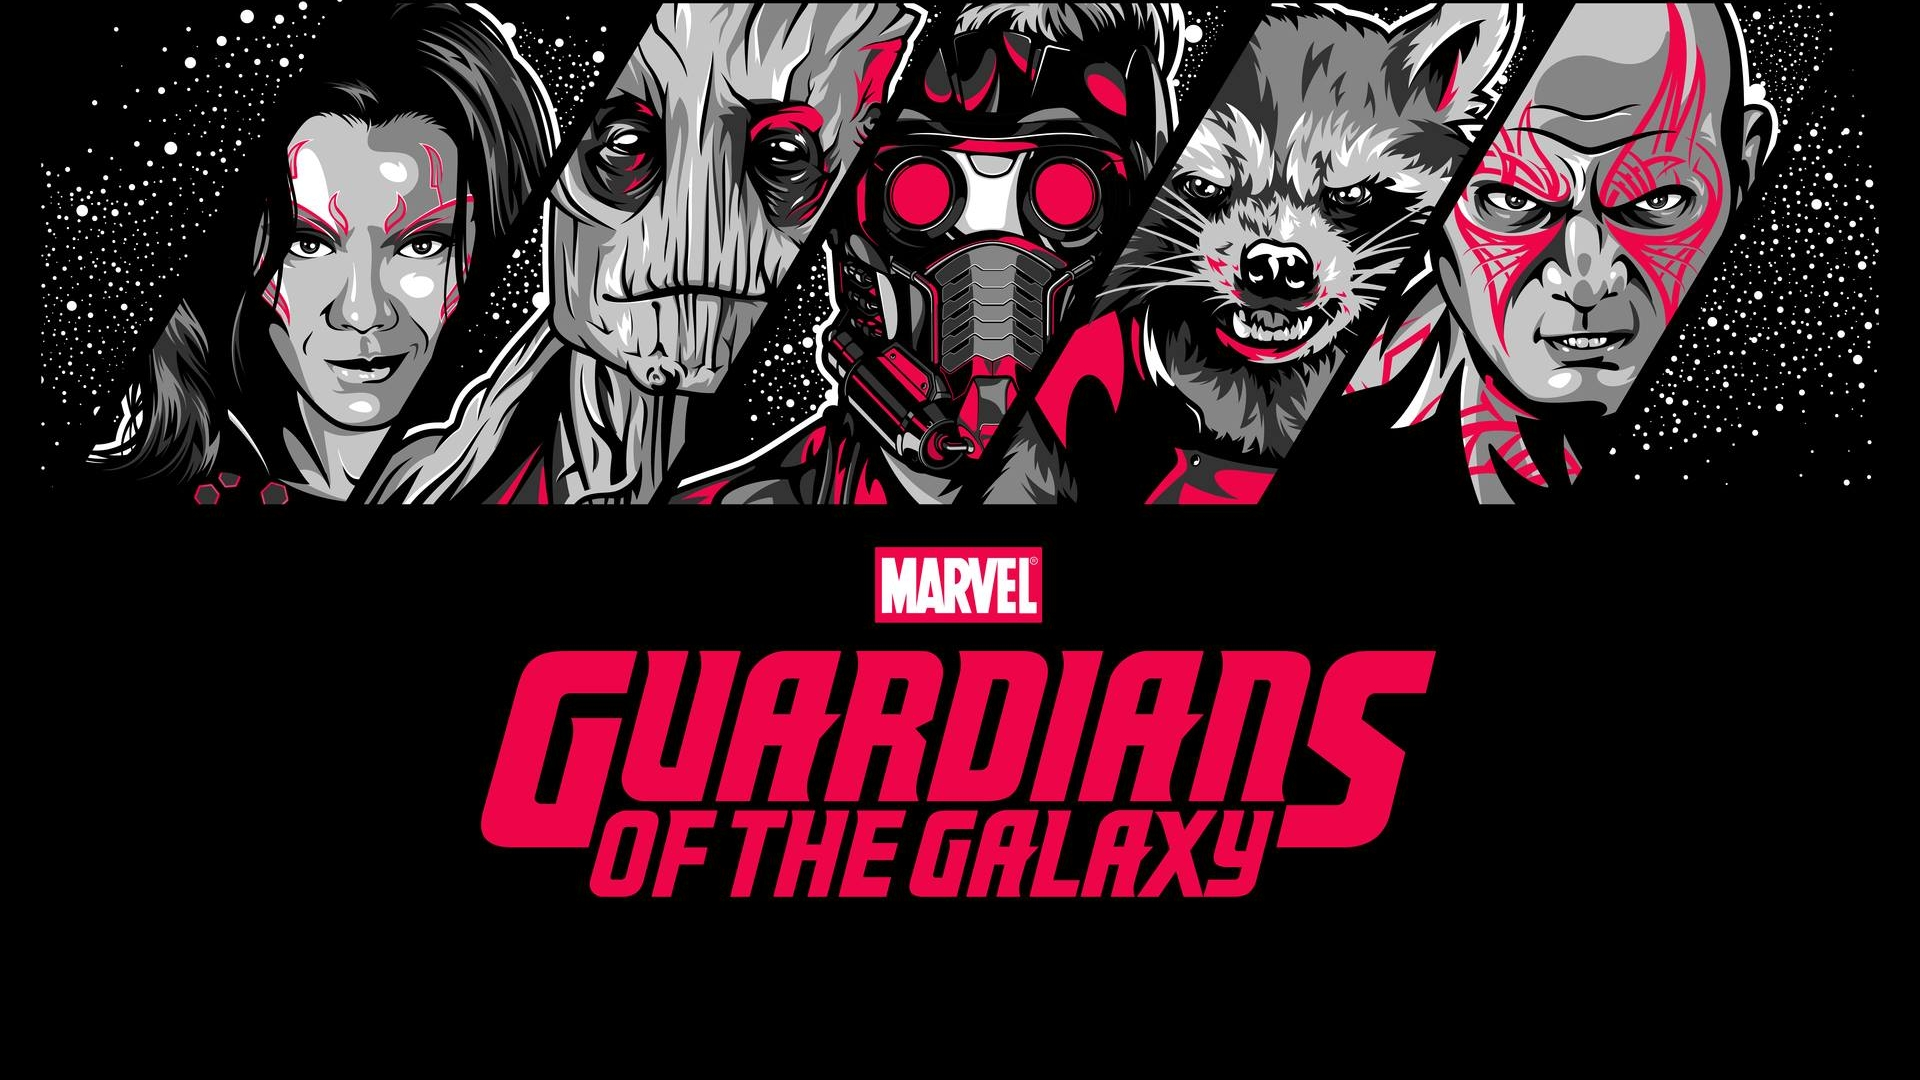 Guardians-Of-The-Galaxy-Computer-Desktop-Backgrounds-wallpaper-wp3606452